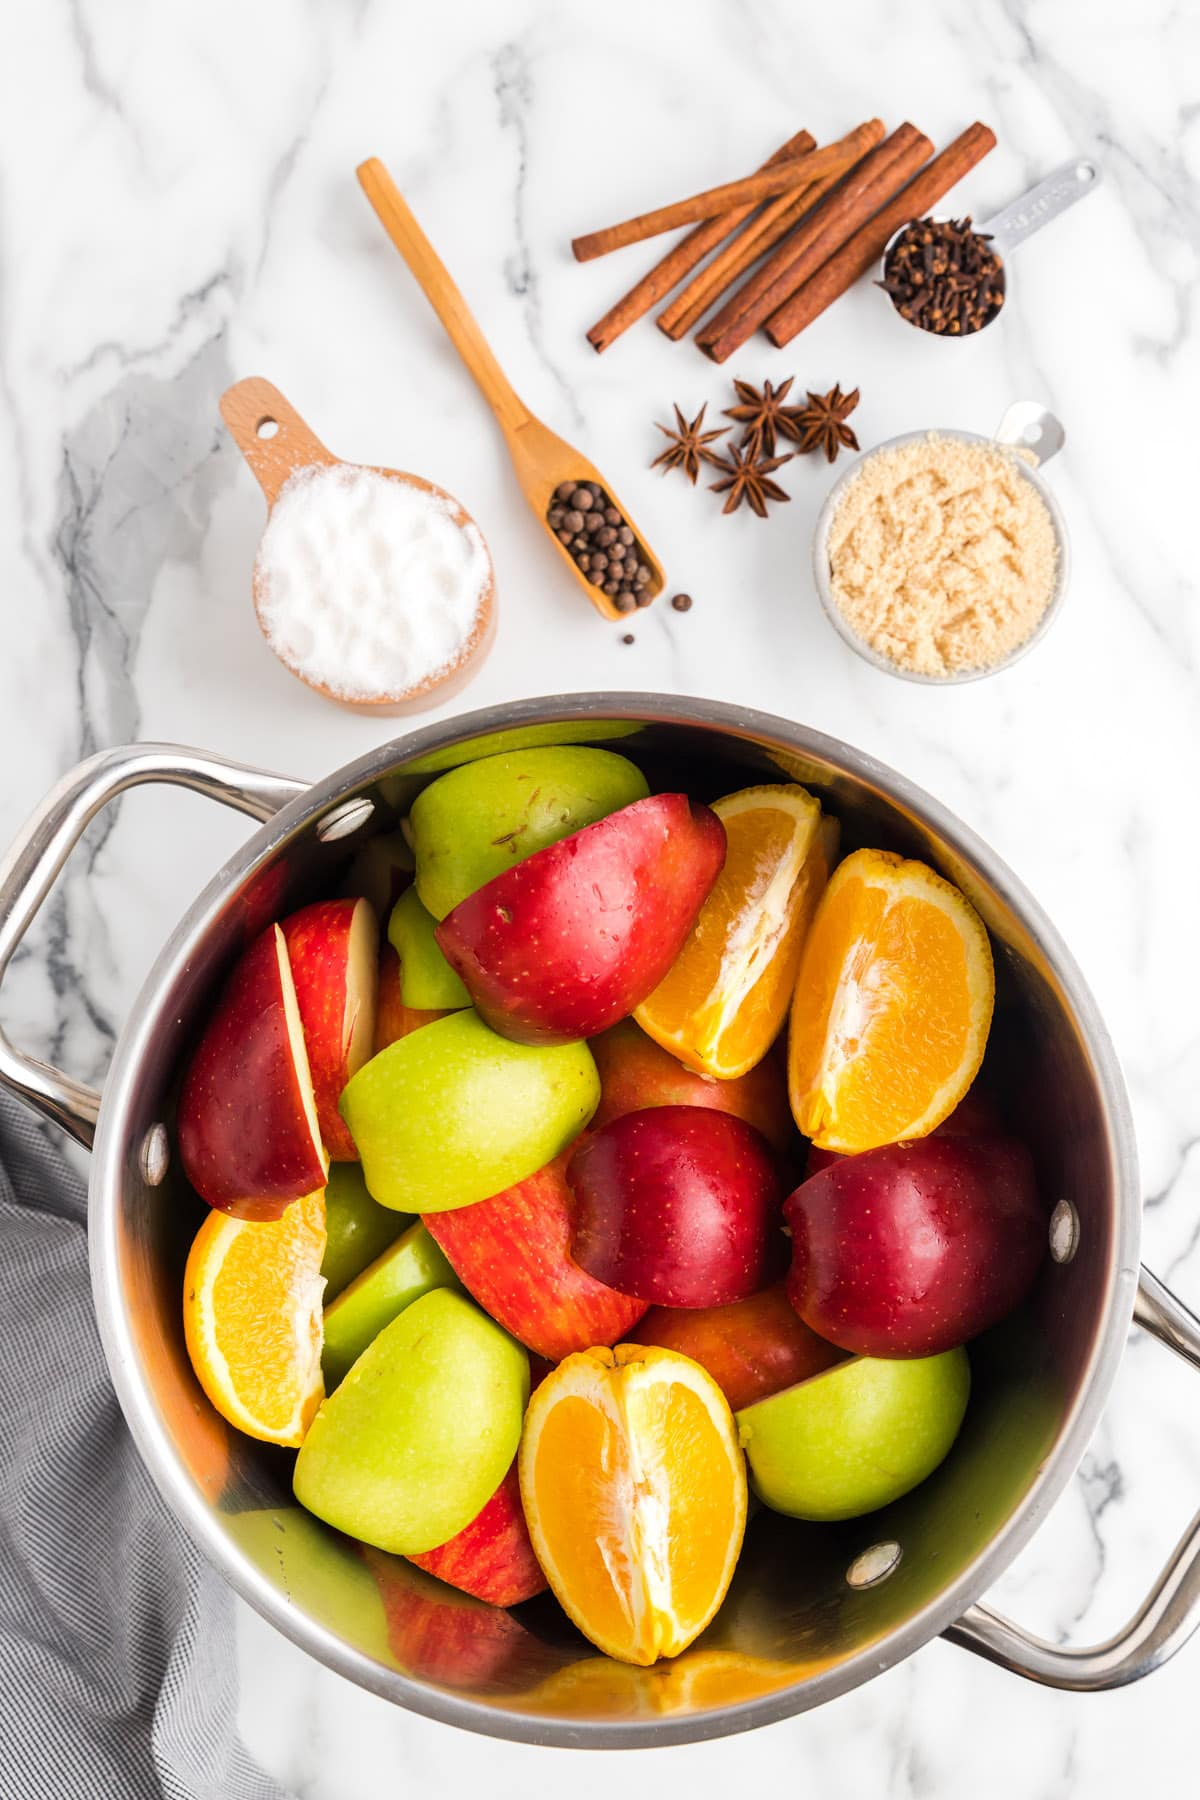 add all fruits into the pot